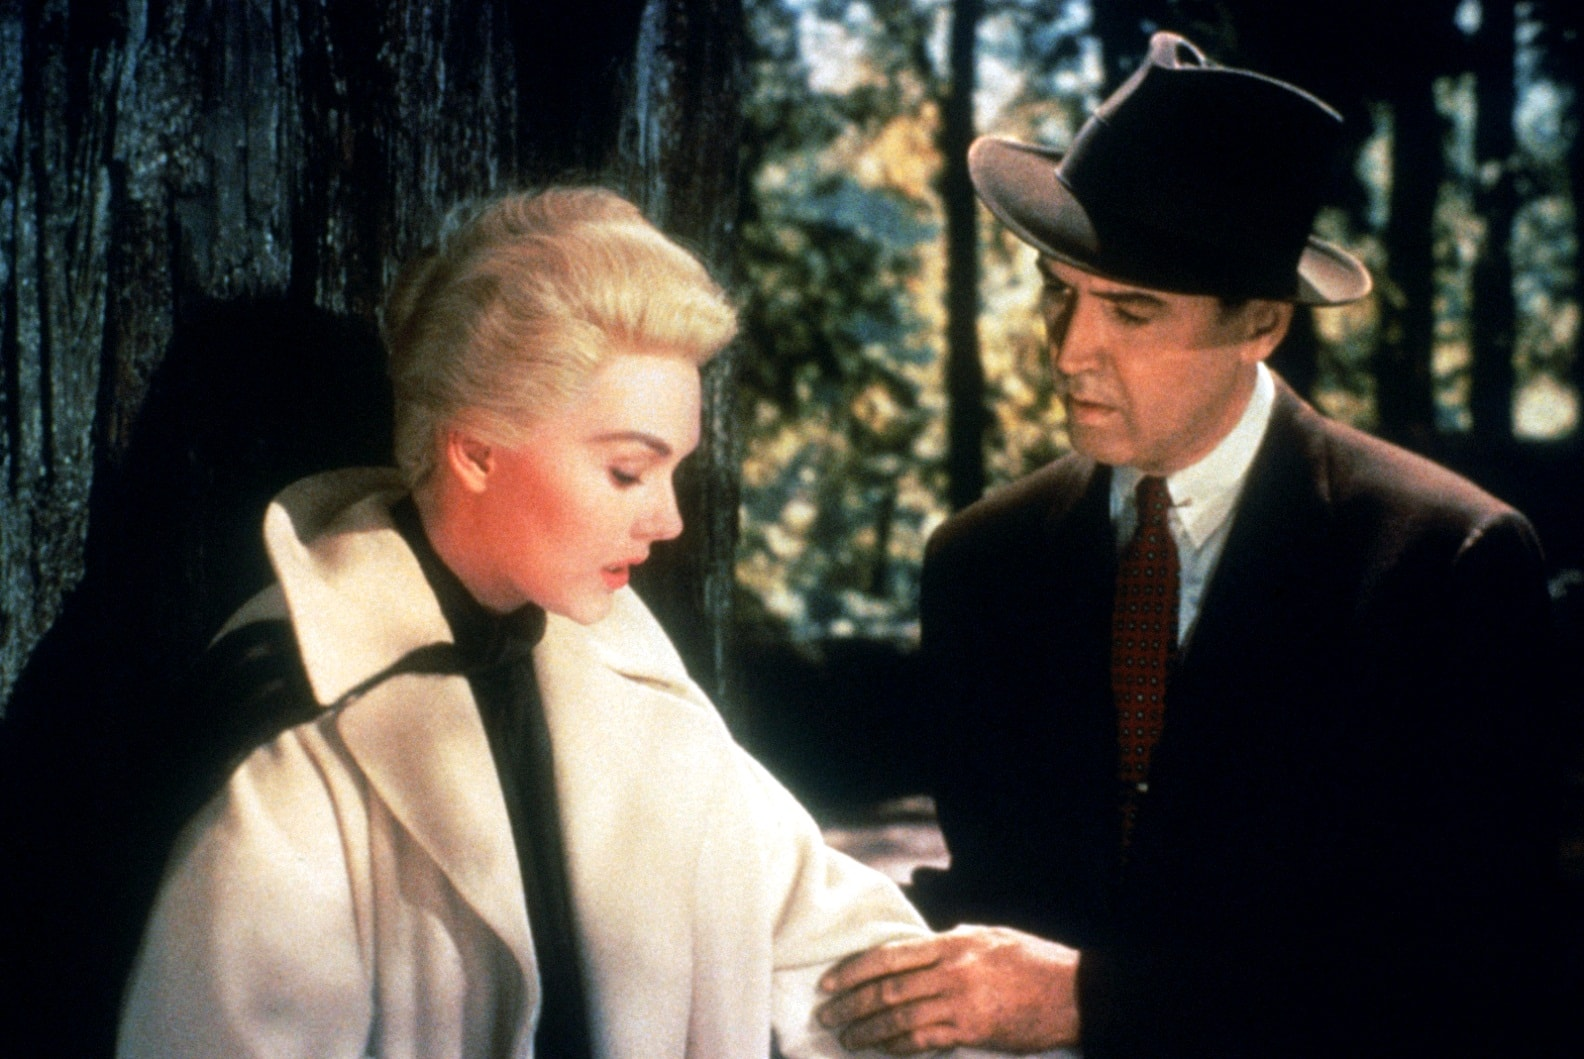 alfred hitchcock movie review Thursday july 11 at 7pm vertigo directed by alfred hitchcock with james stewart, kim novak, barbara bel geddes us 1958, 35mm, color, 120 min hitchcock's grand enigma was recently enshrined as the greatest film of all time in the british film institute's respected survey, infamously displacing citizen kane for the first time in fifty years.